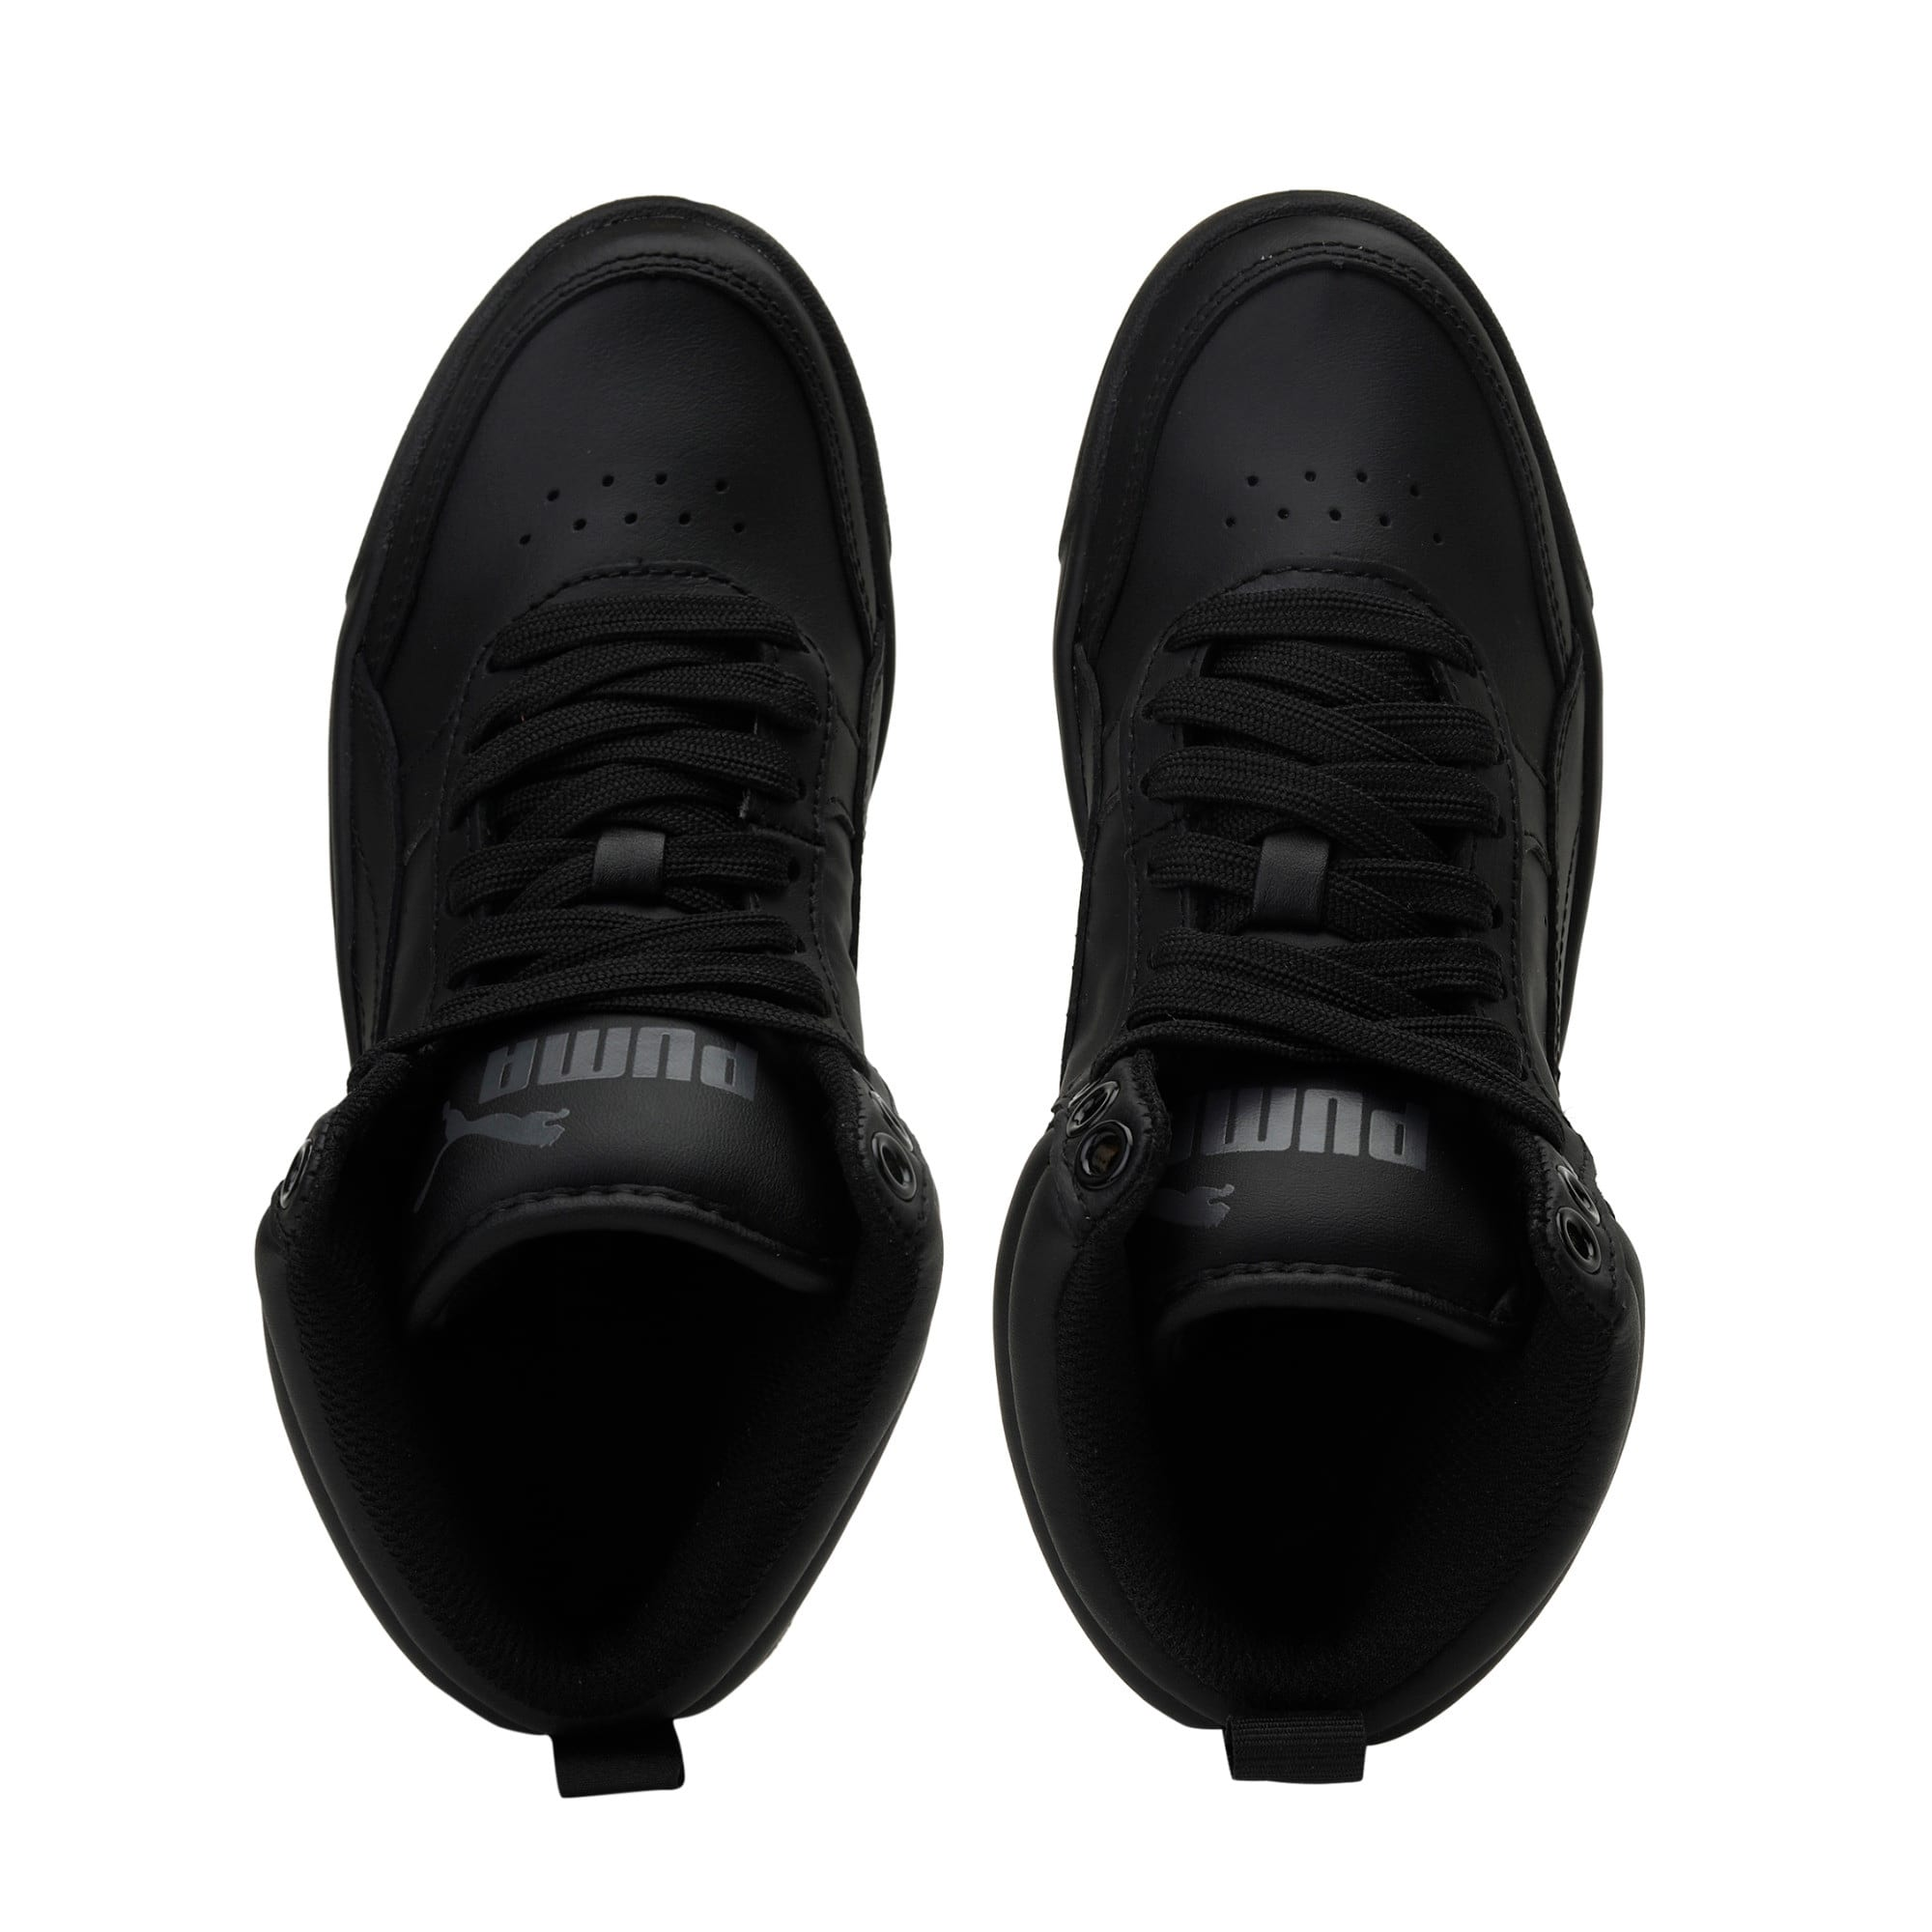 Thumbnail 6 of Rebound Street v2 Leather Kids' High Tops, Puma Black-Puma Black, medium-IND